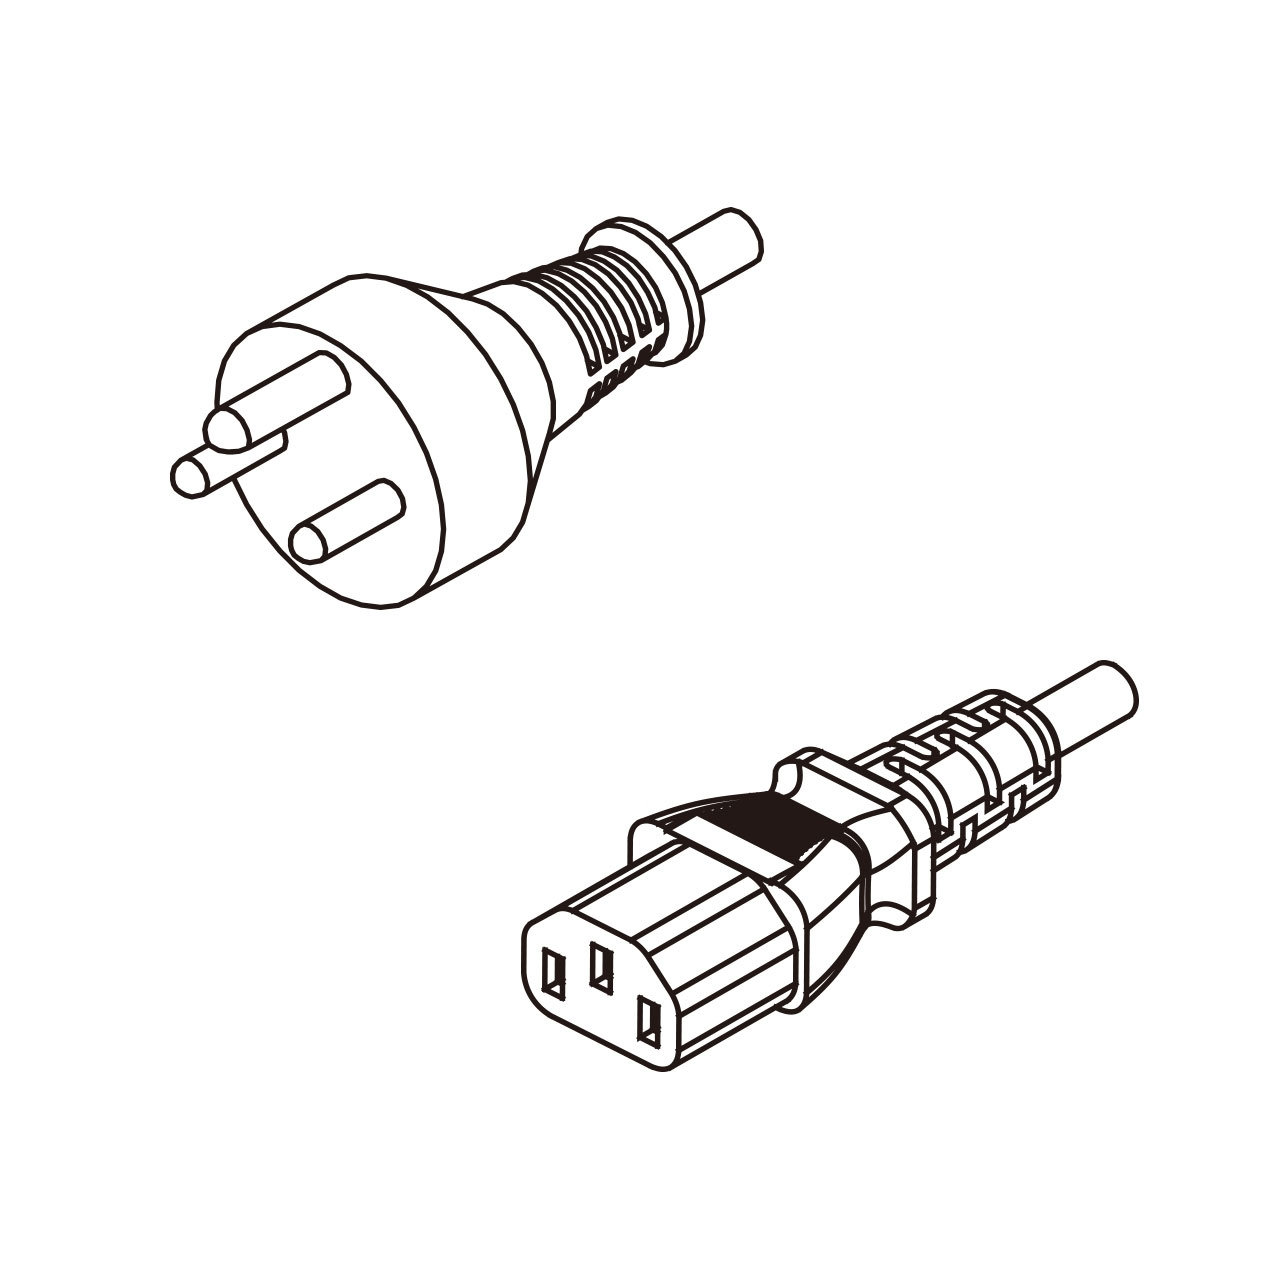 3 Pin Iec 320 C13 Ac Pvc Cord Set 1 8